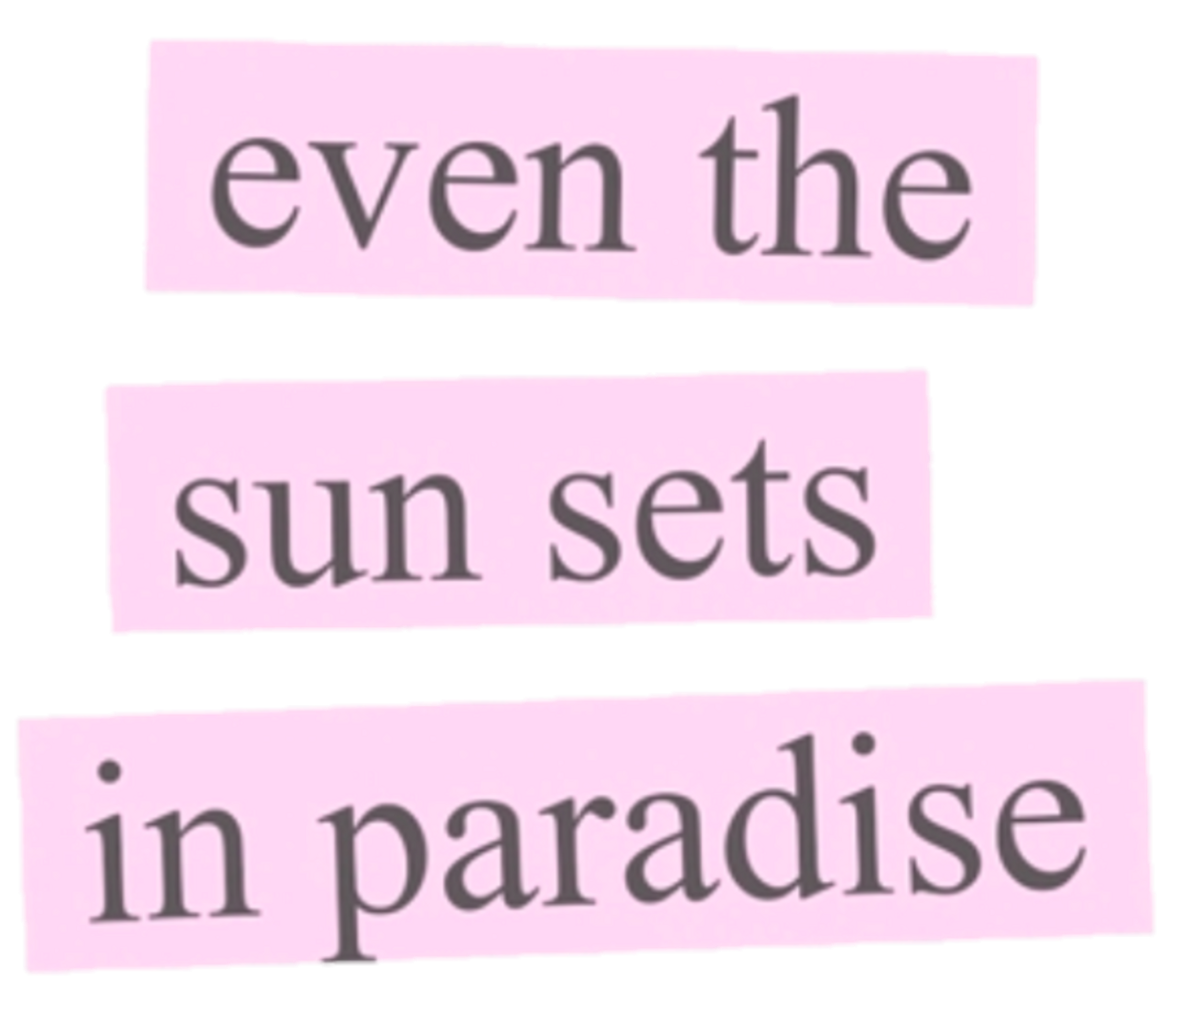 Drawing sunset paradise. Moodboards quotes pink aesthetic